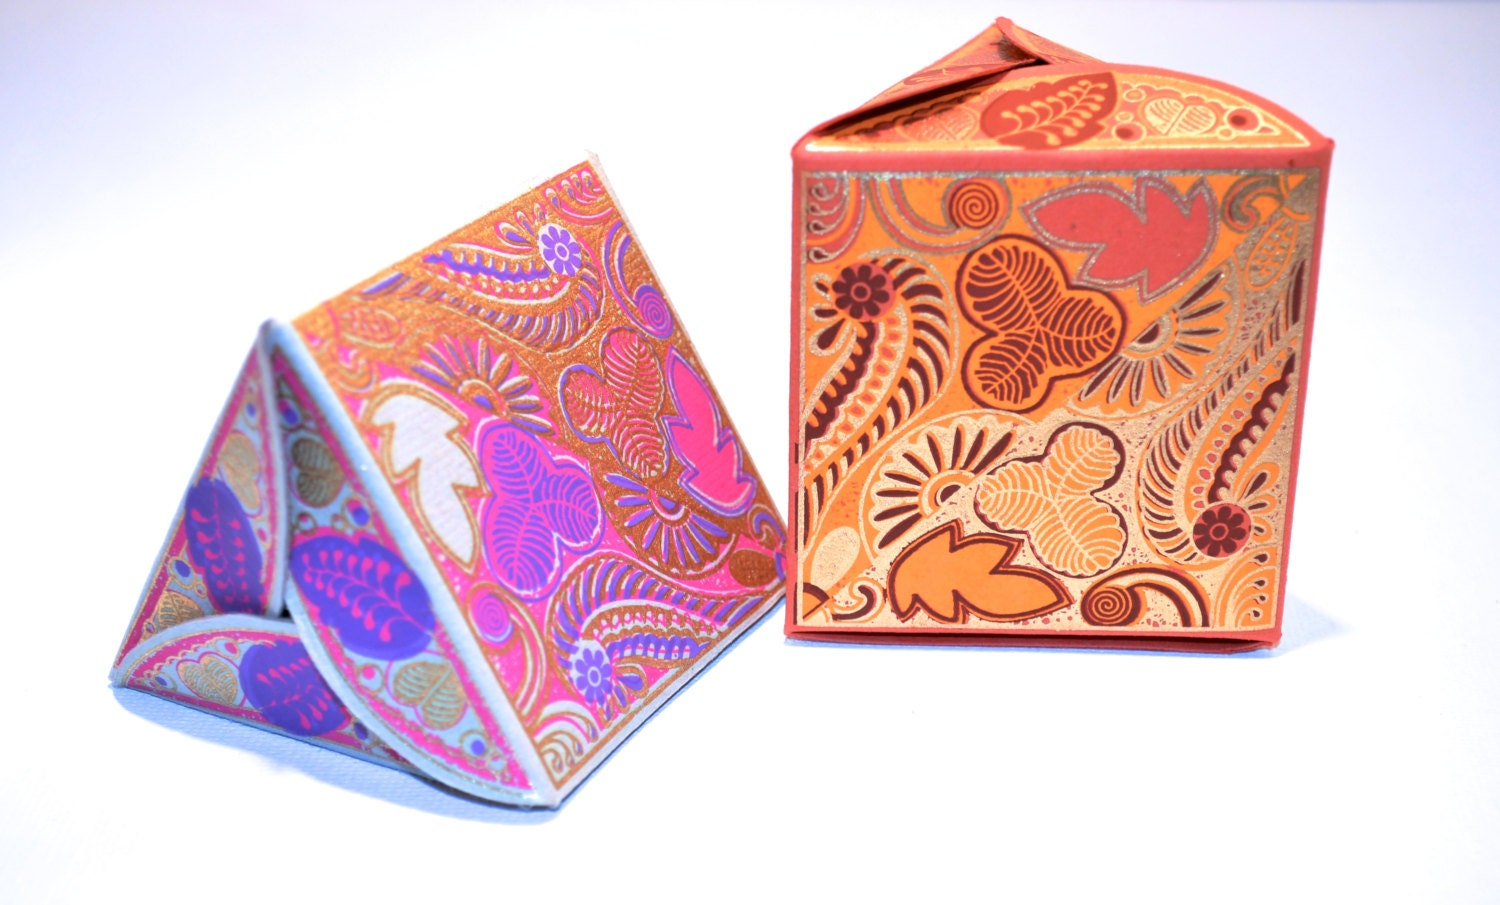 Favor Gift Boxes: 2 Small Triangular Gift Boxes Paper Box Favors By PenandFavor